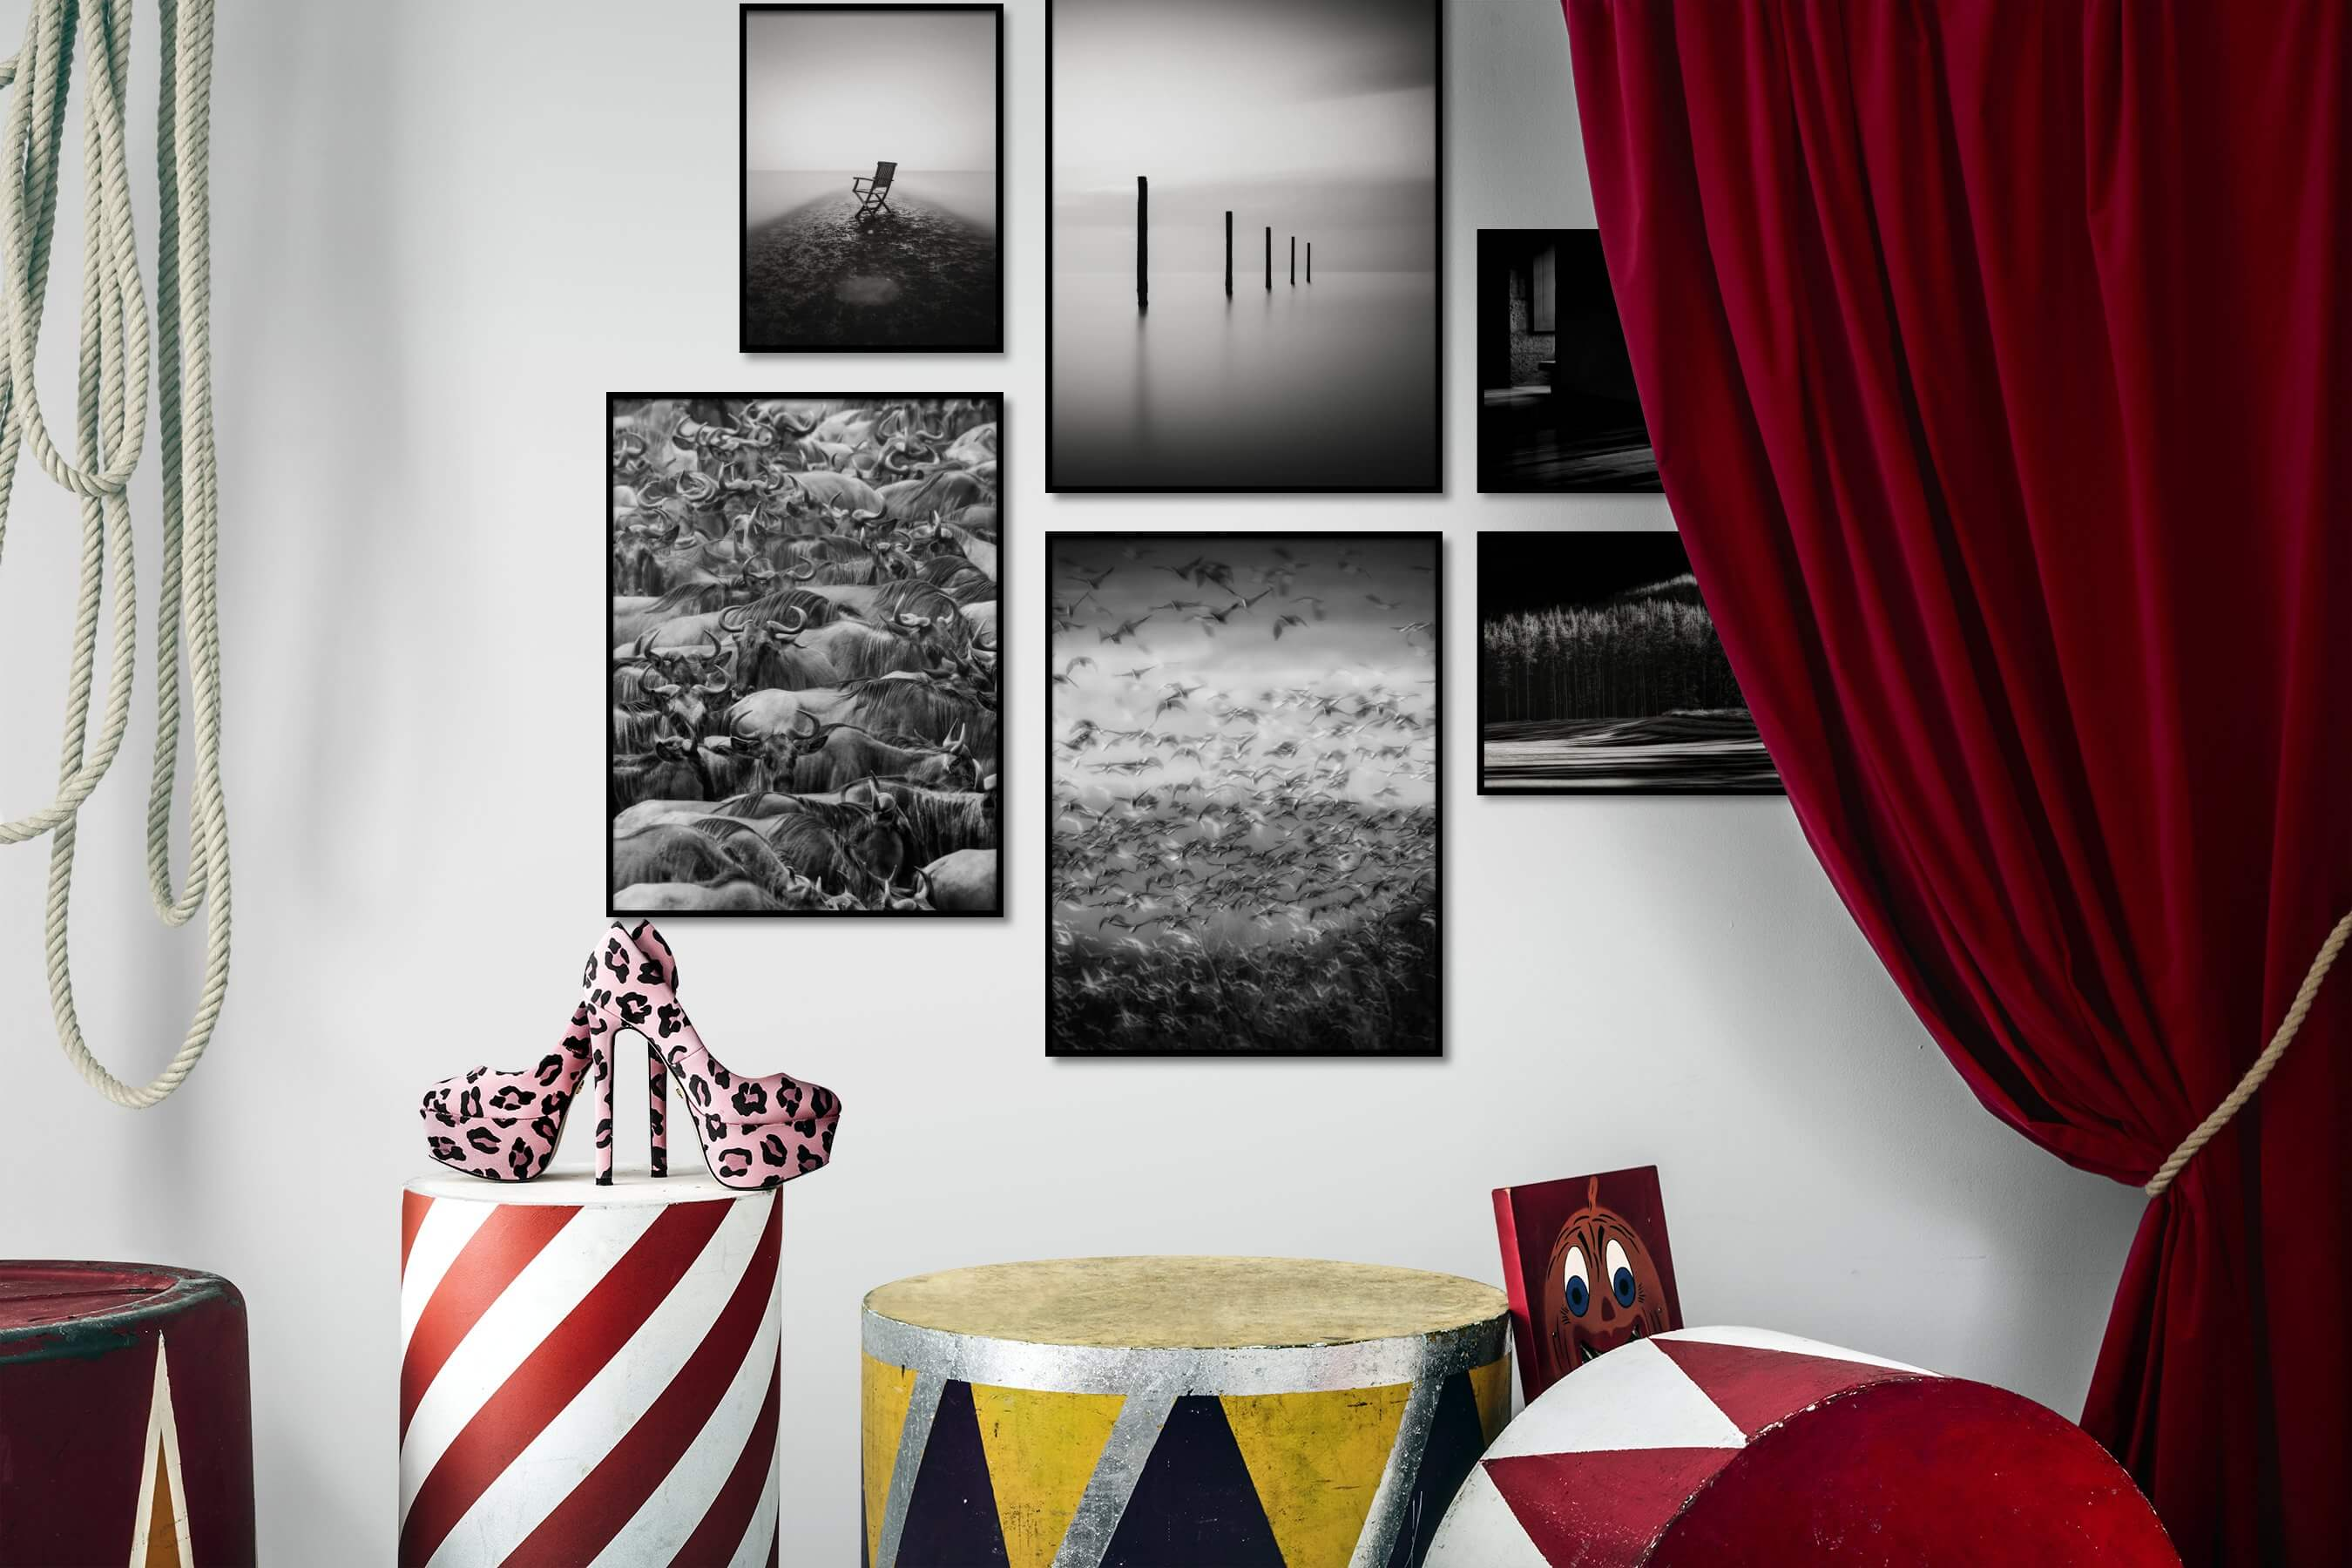 Gallery wall idea with six framed pictures arranged on a wall depicting Black & White, For the Minimalist, Mindfulness, For the Maximalist, Animals, For the Moderate, Fashion & Beauty, and Nature